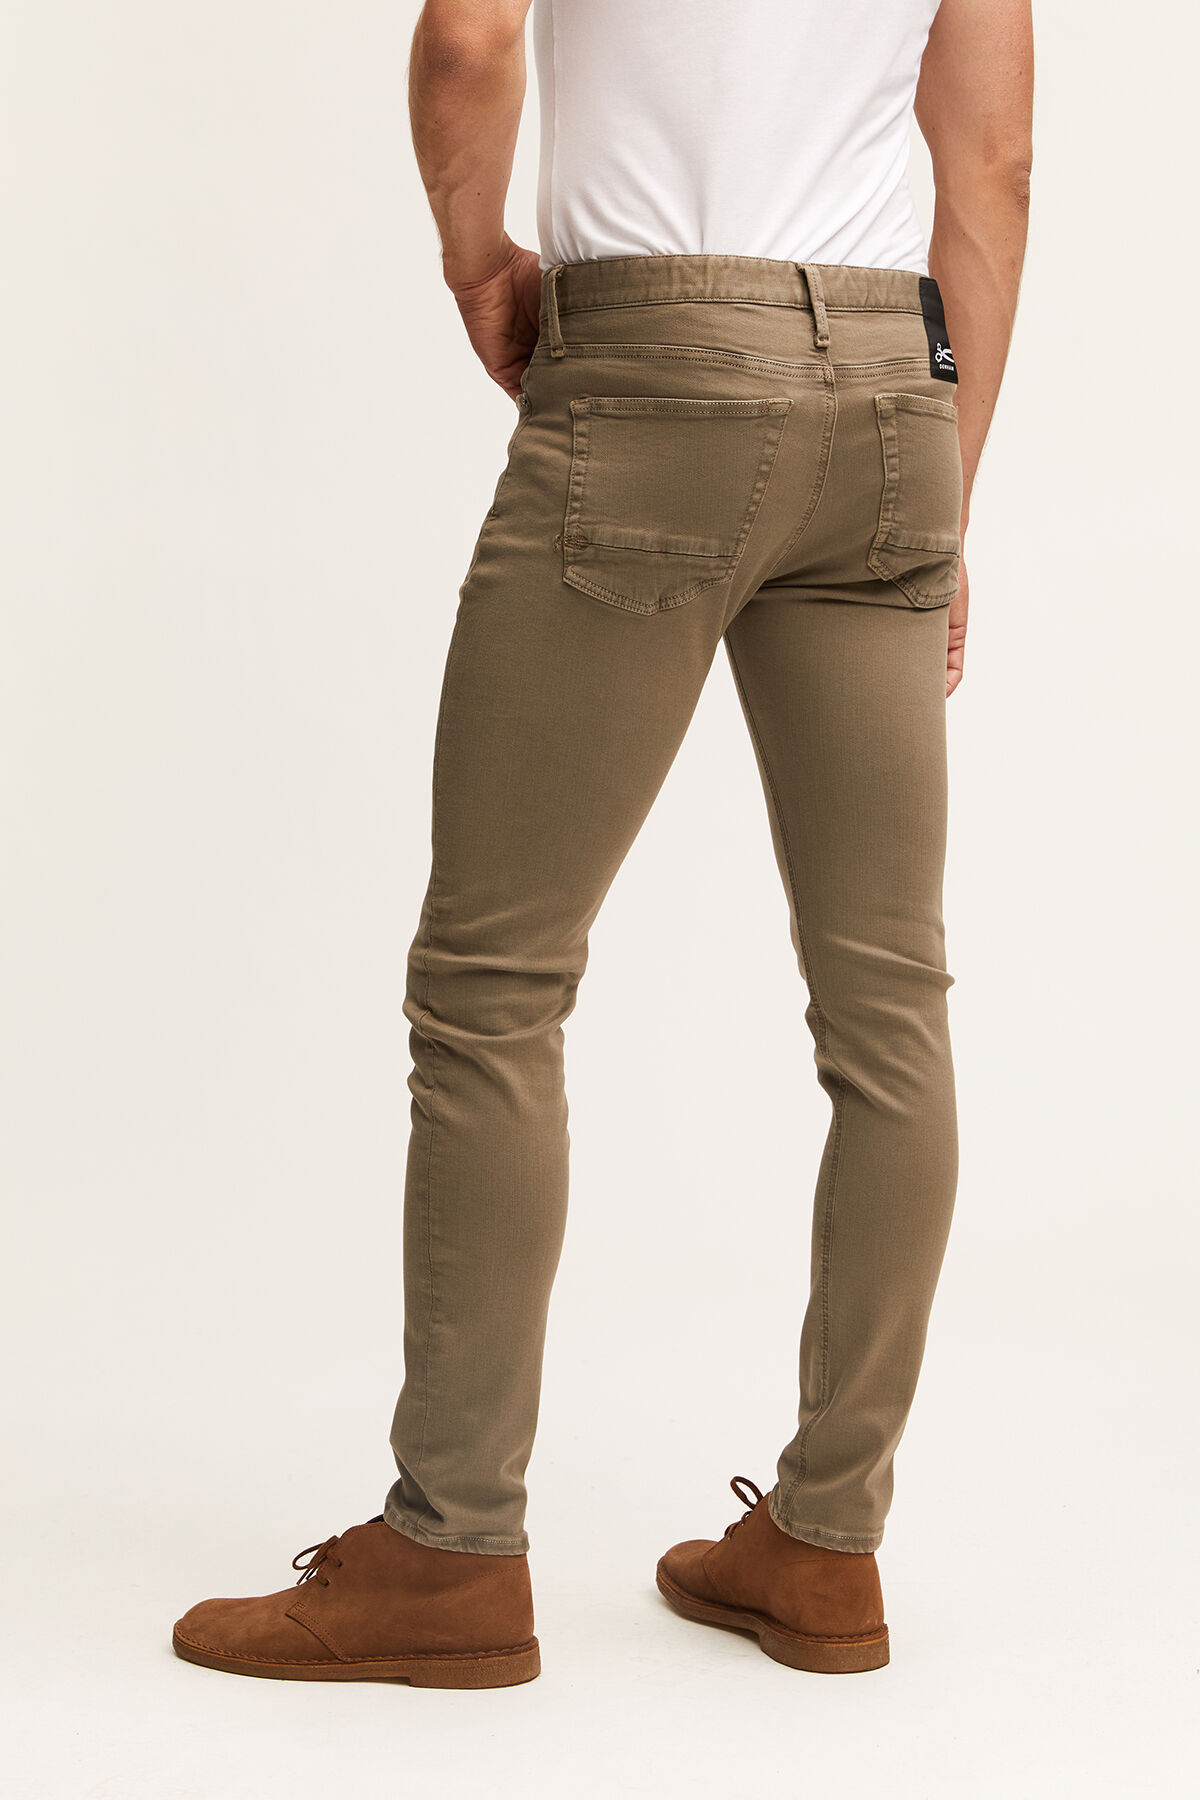 BOLT CHINO Garment Dyed - Skinny Fit